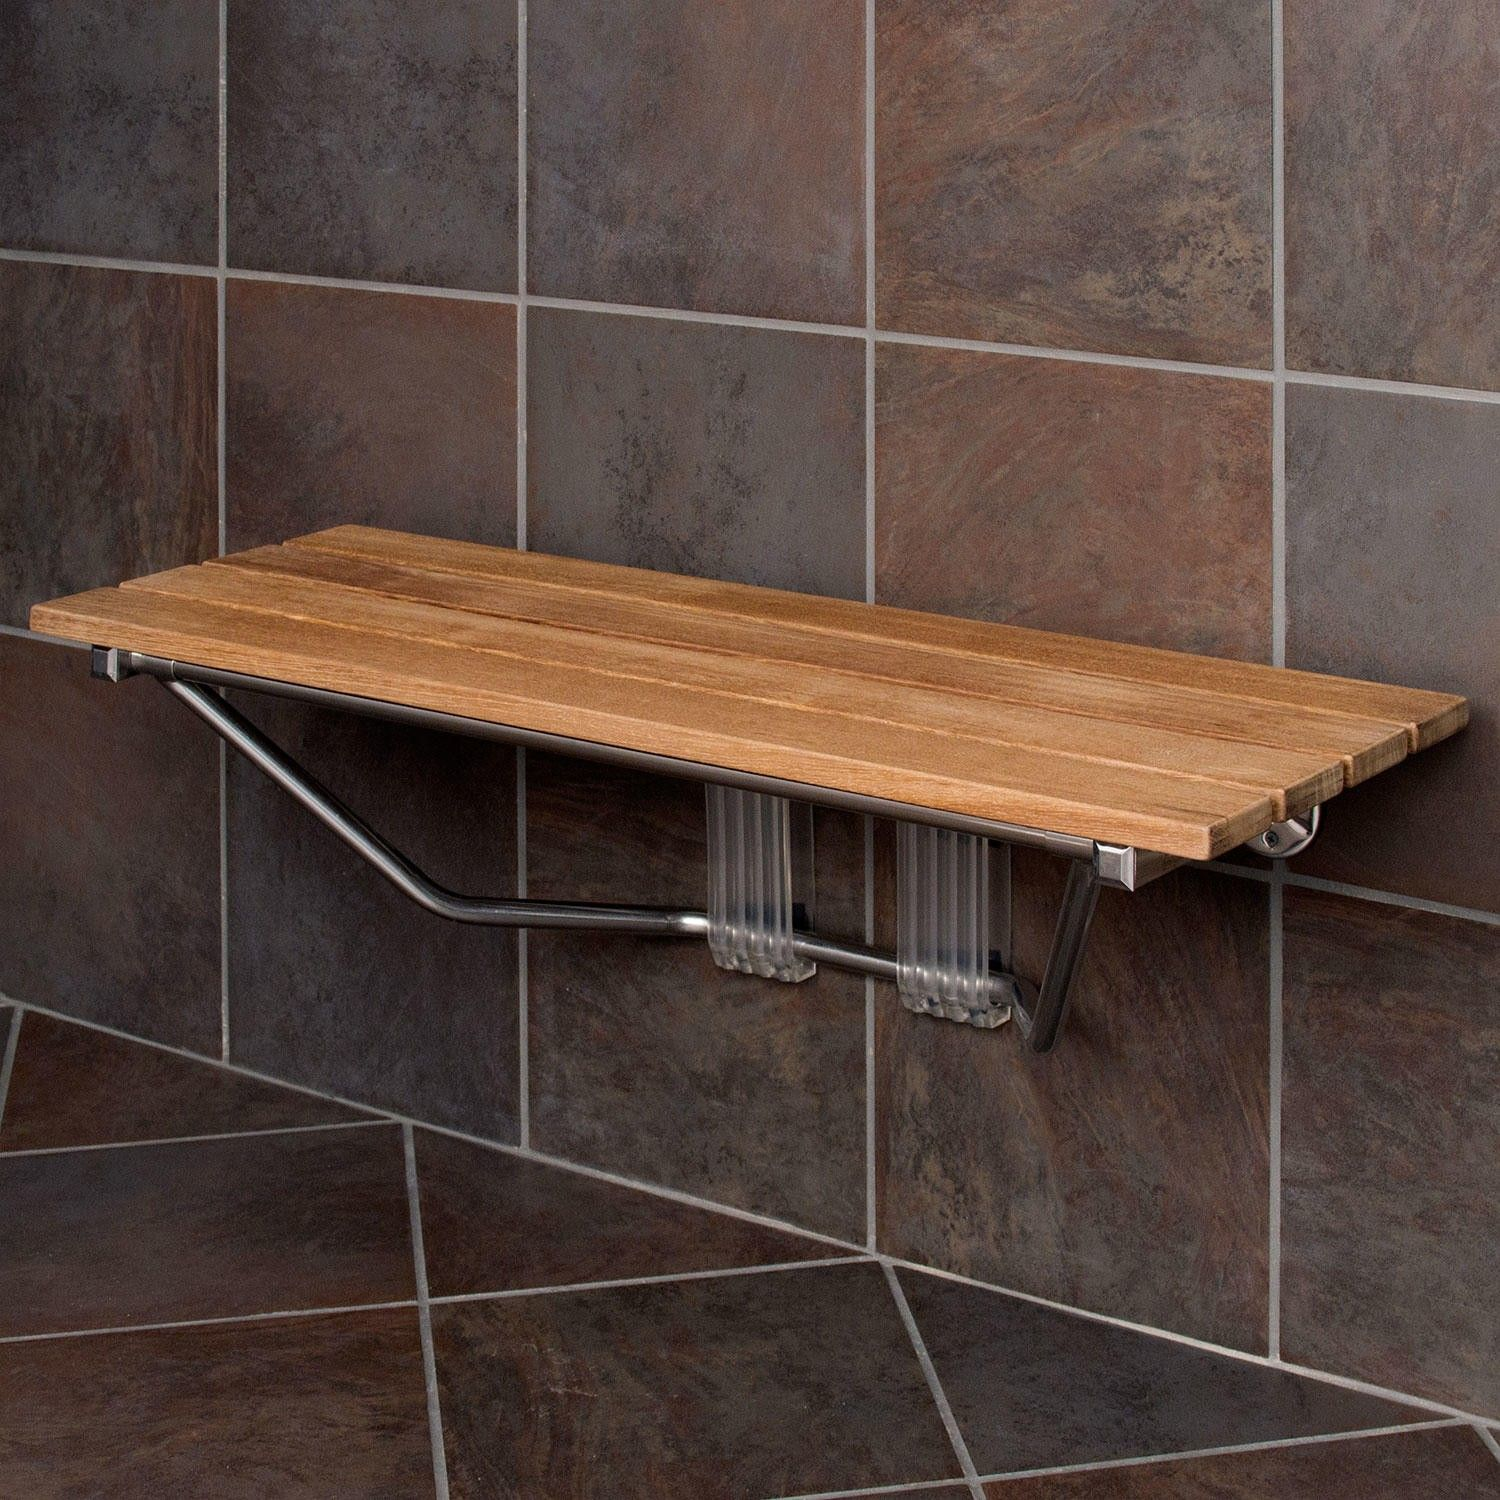 36 In Teak Wall Mount Slatted Folding Shower Seat With Stainless